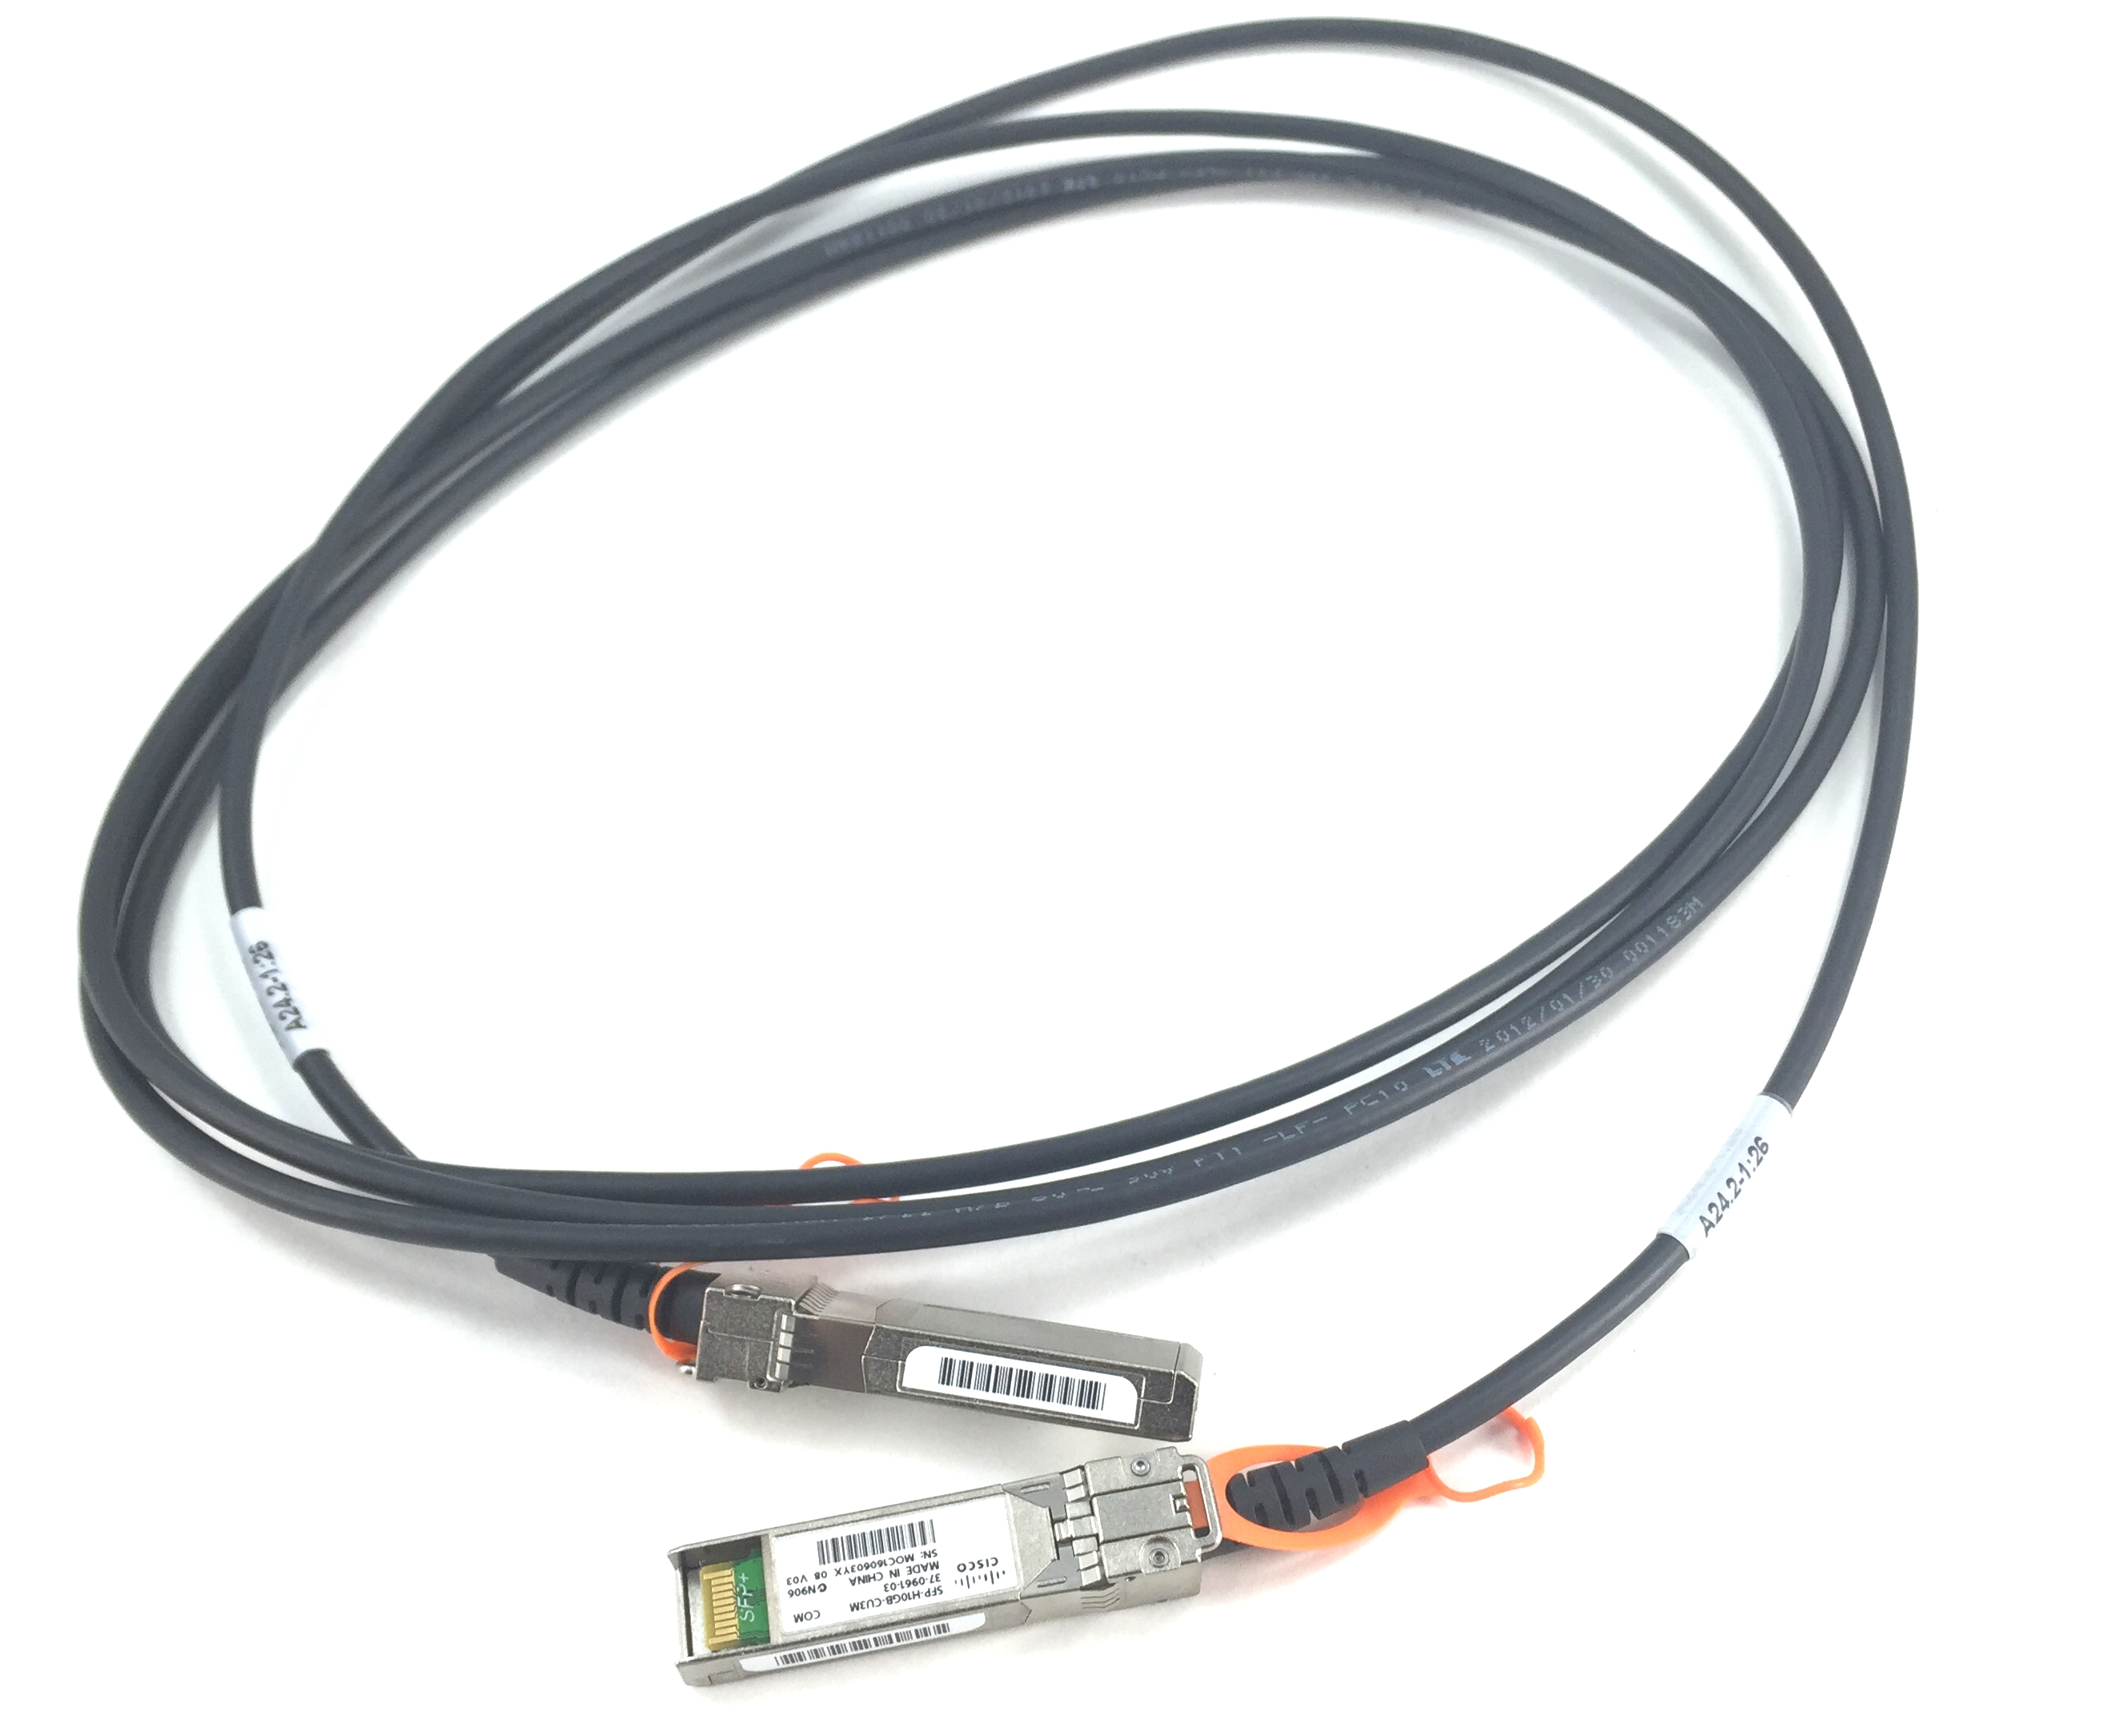 Cisco 10GB SFP+ Twinax Copper 3M Passive Cable (SFP-H10GB-CU3M)